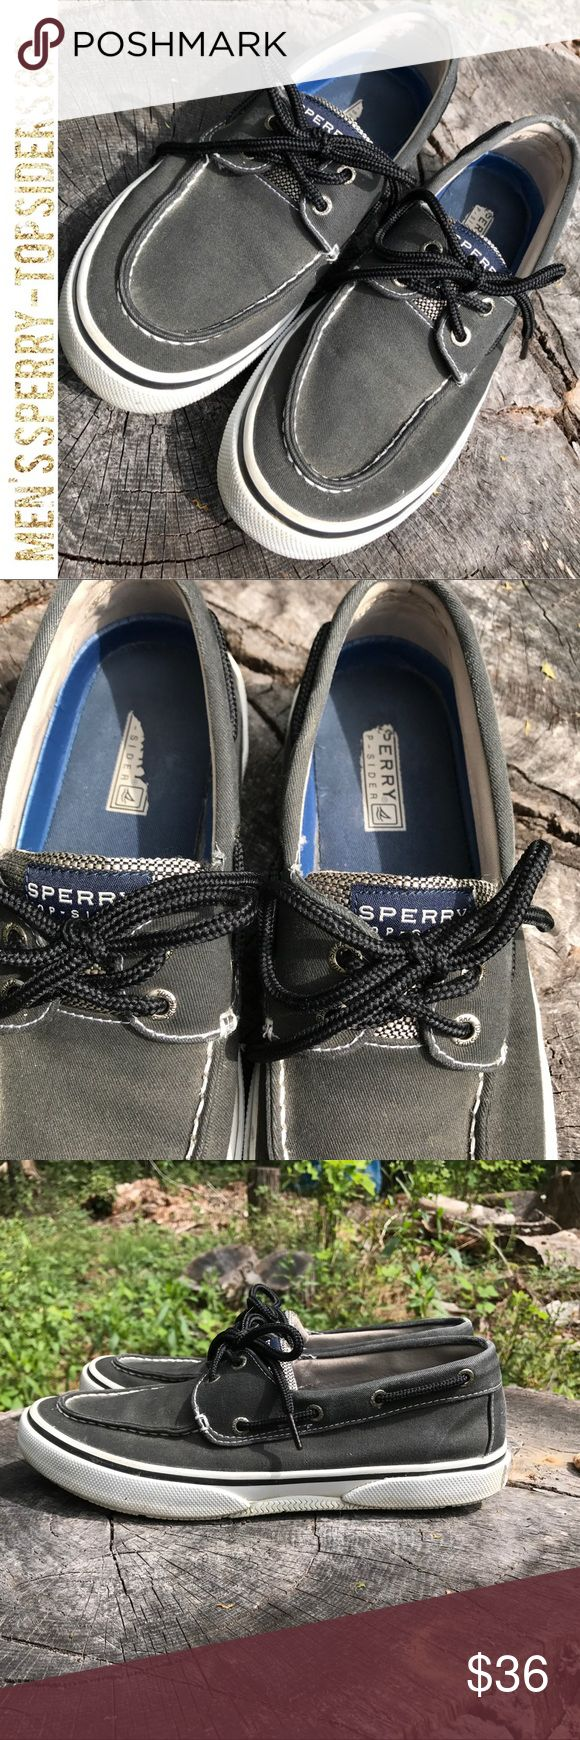 Men's Canvas Black Sperry-Topsider Boat Shoes The white sides and the soles look like these were only worn a couple of times. They're in almost brand new condition. The only thing I see is the inside label where your heel goes looks like that is somewhat worn down. These are sturdy black canvas shoe in a size 8.5. Men love these whether they have a boat or not. Sperry Top-Sider Shoes Boat Shoes